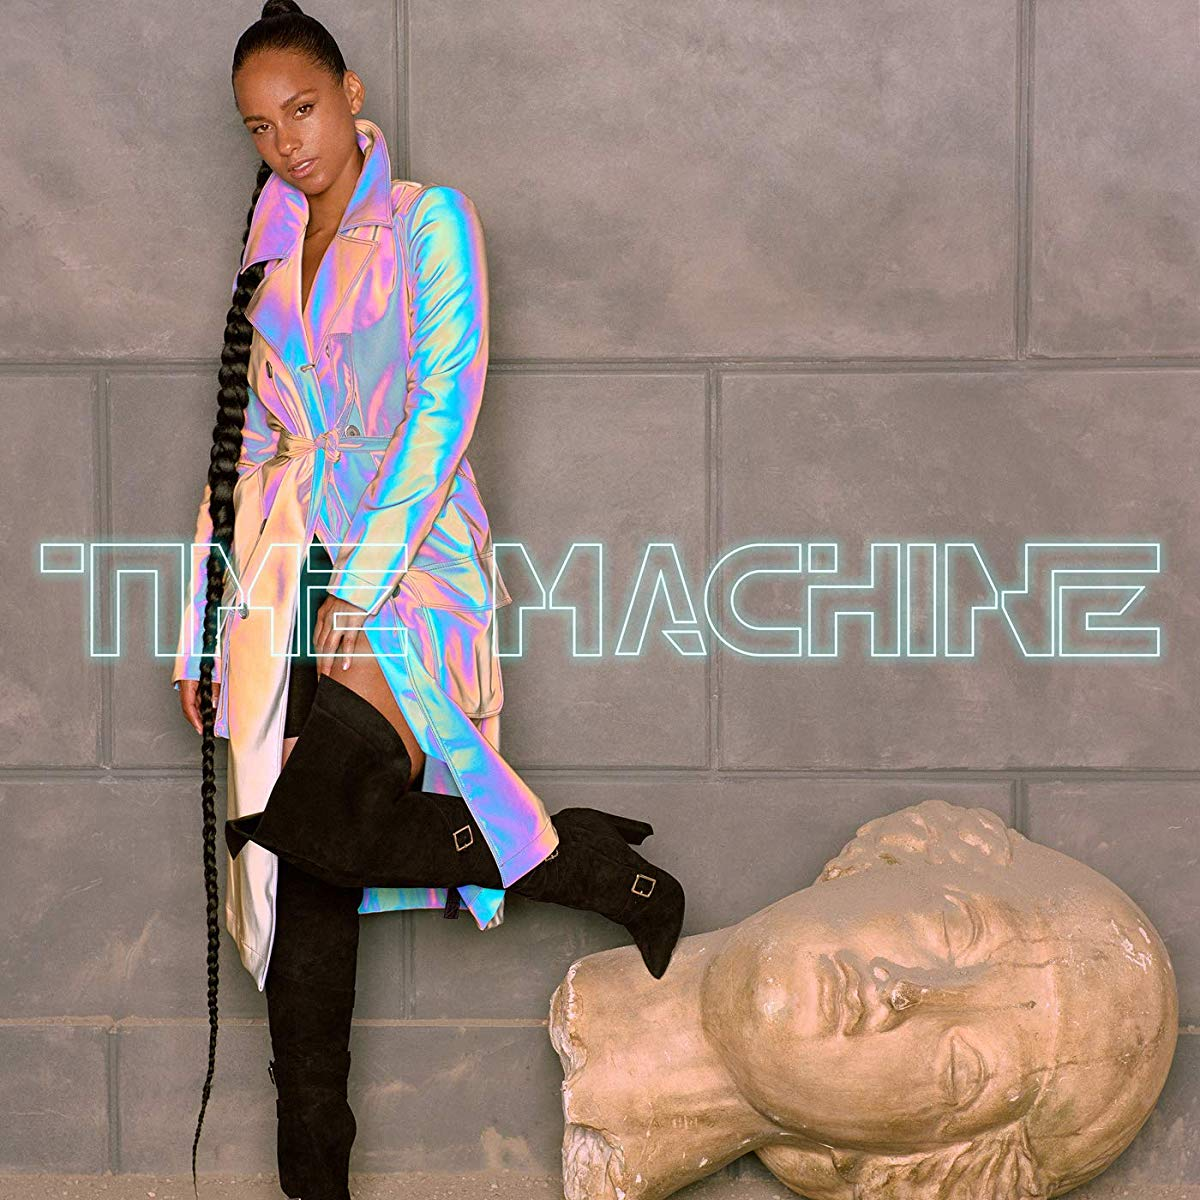 Time Machine d'Alicia Keys, entre pop et hip-hop, un arc-en-ciel de couleurs